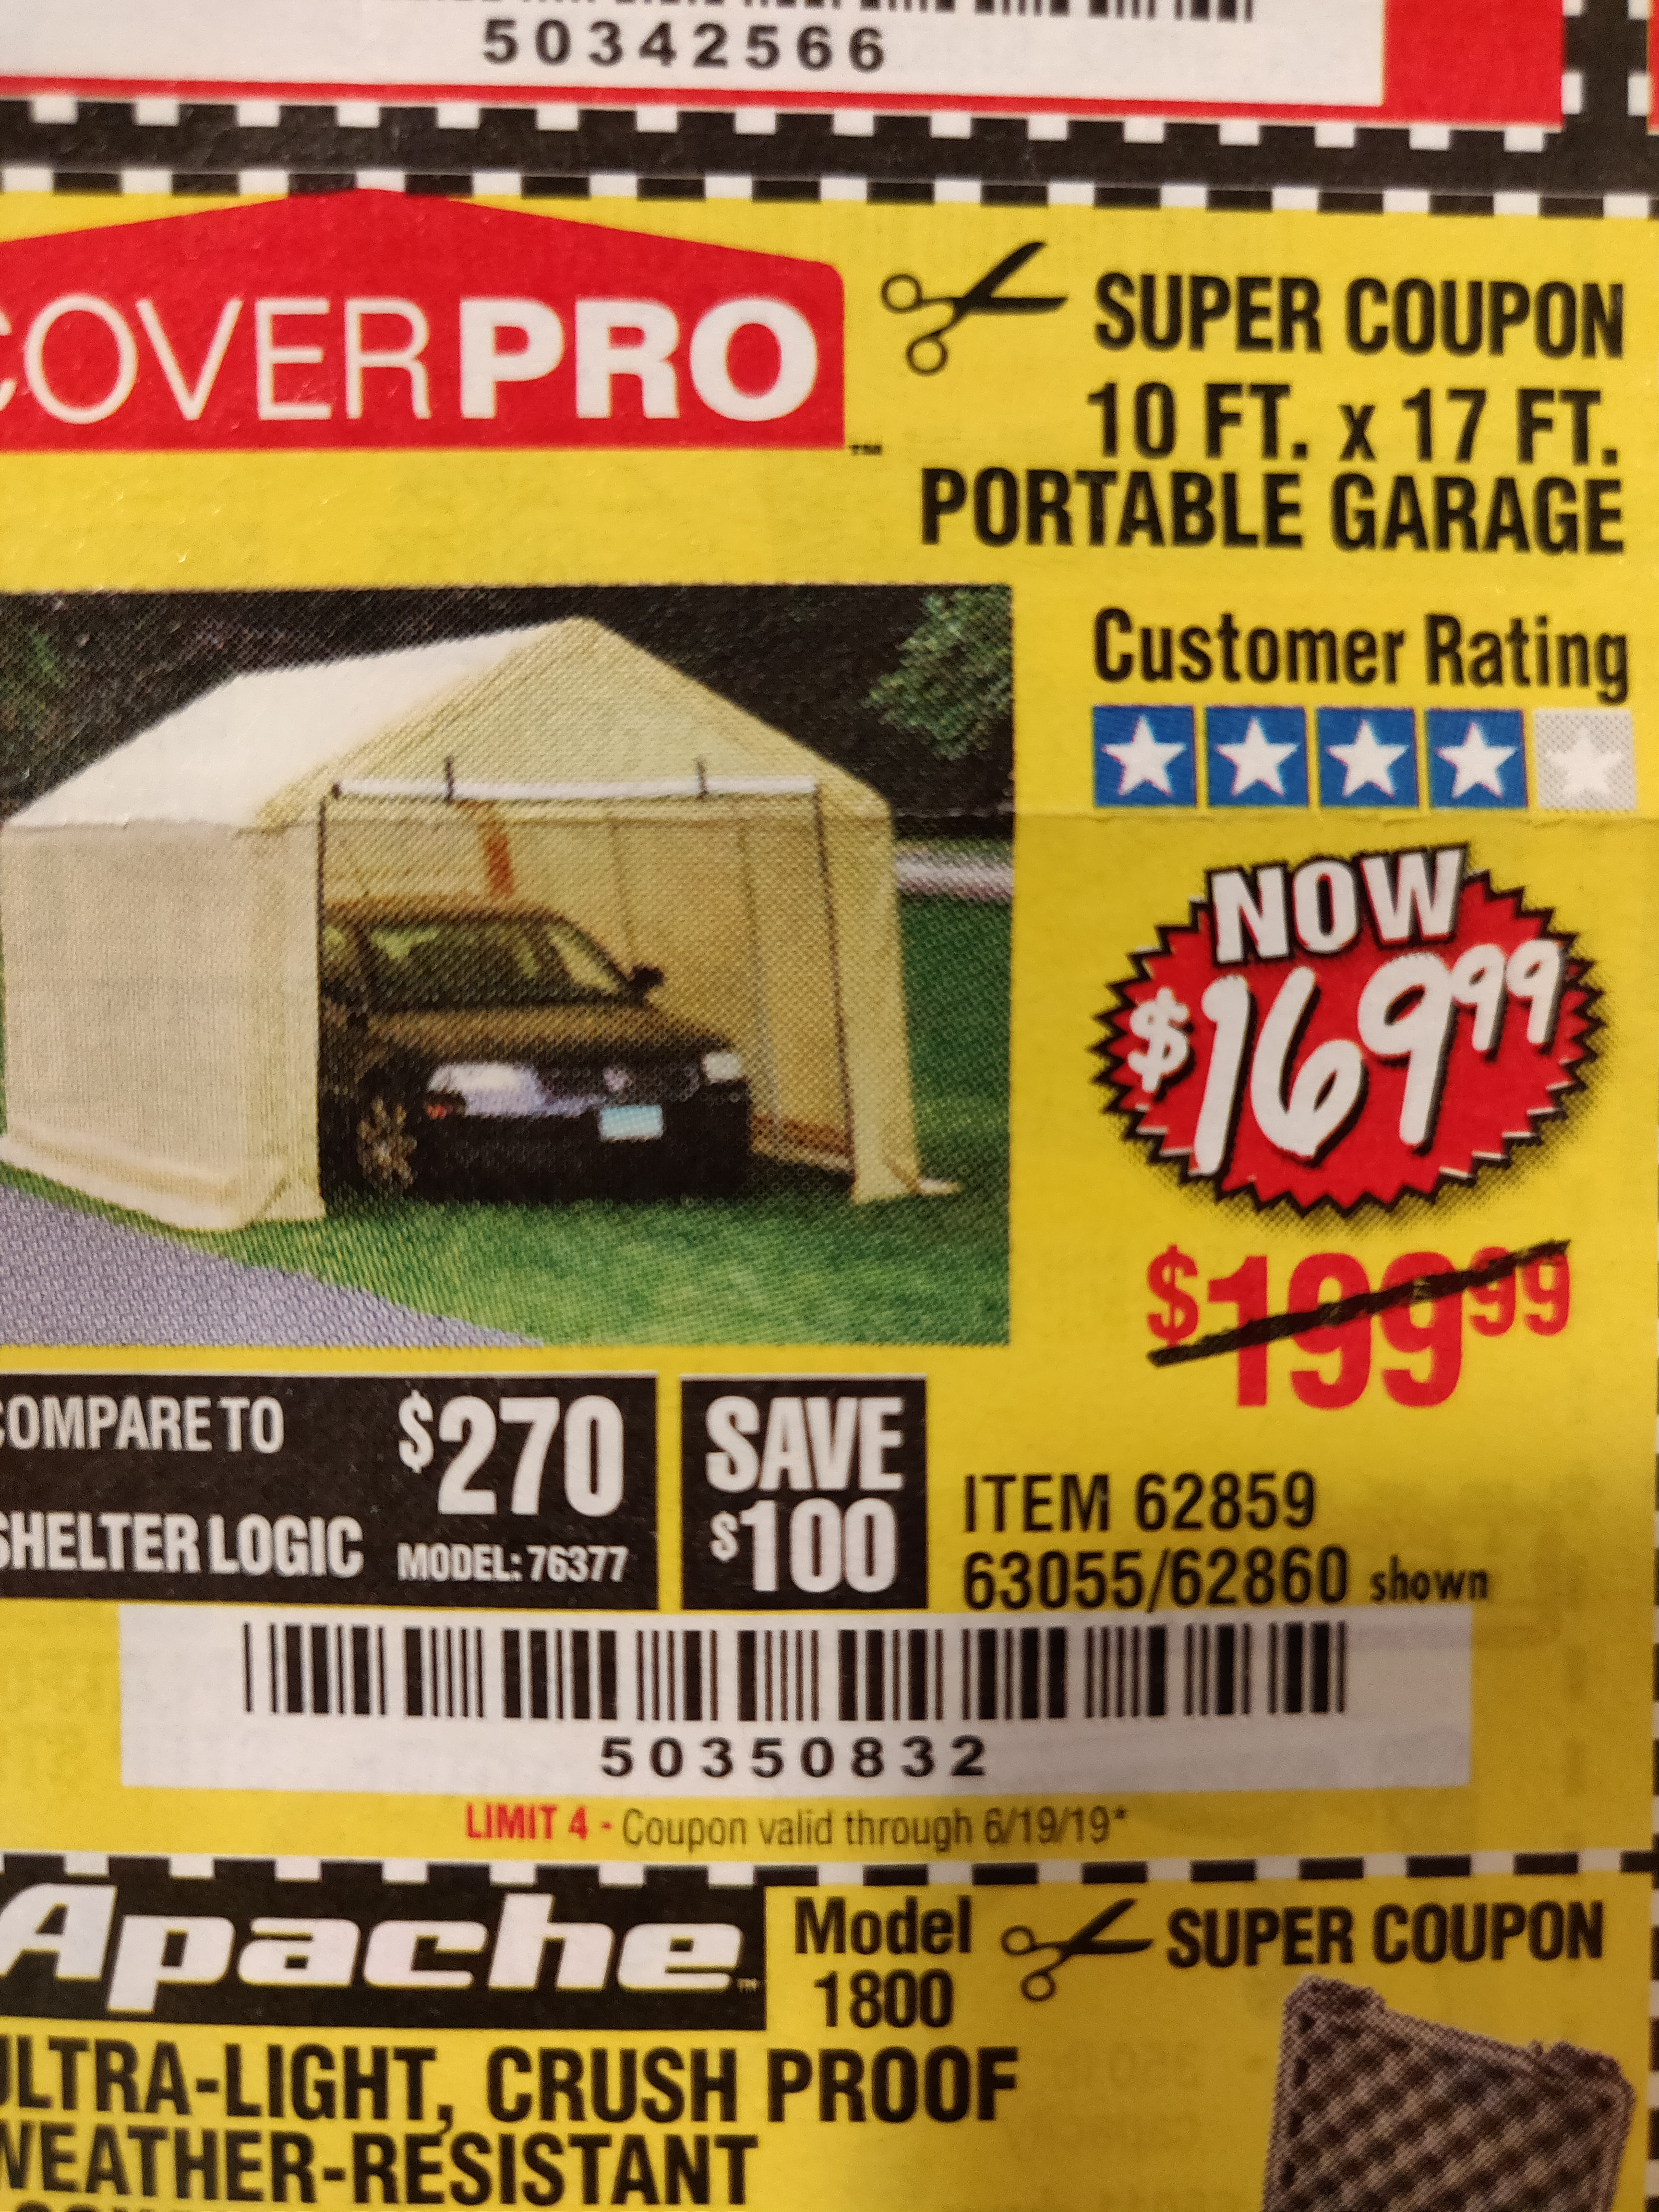 www.hfqpdb.com - 10 FT. x 17 FT. PORTABLE GARAGE Lot No. 69039/60727/62286/62860/63055/62864/62859